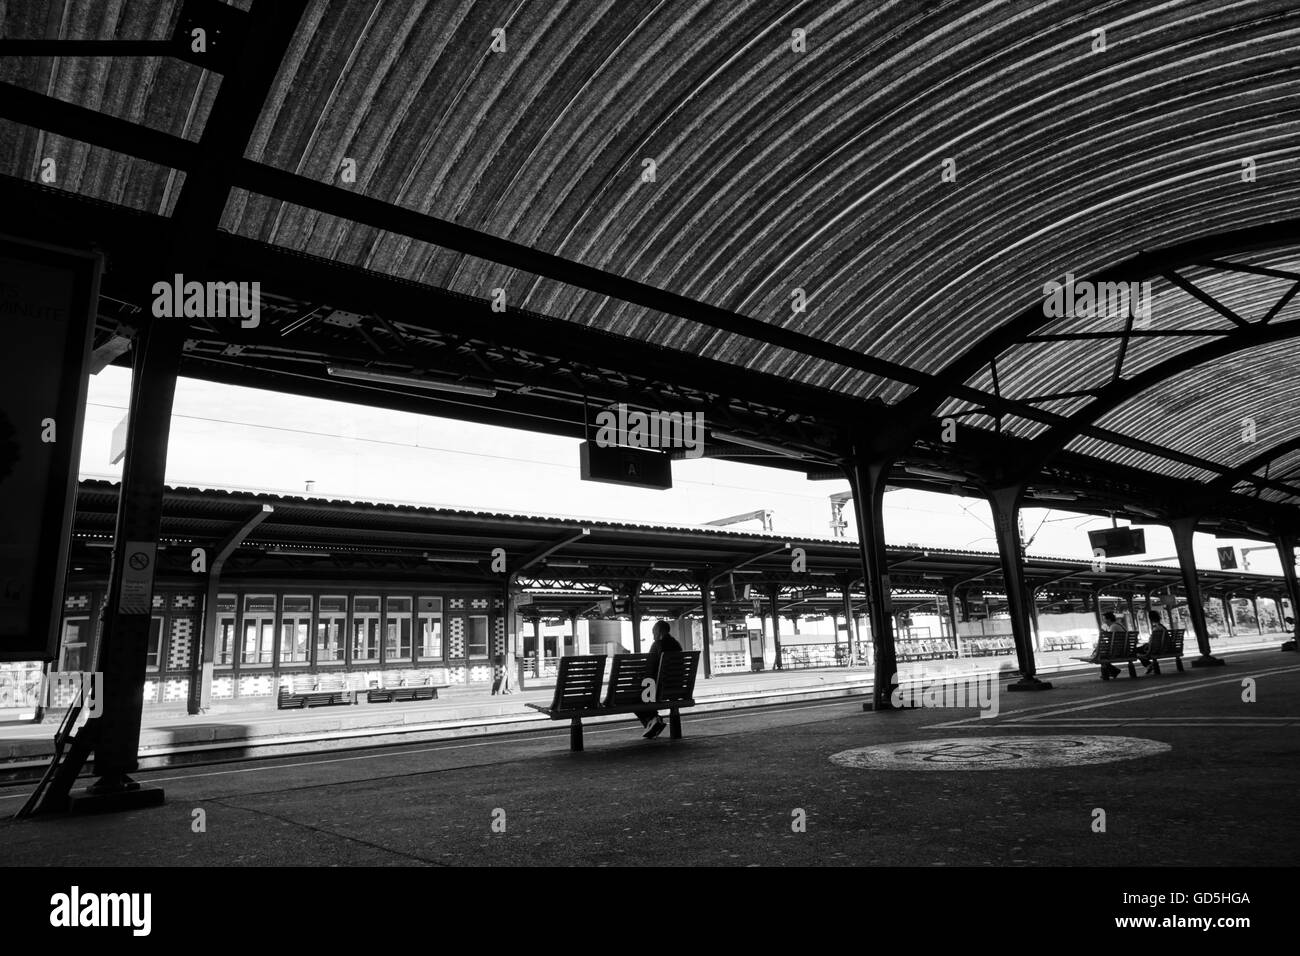 Railway platform and roof, colmar, france, europe - Stock Image